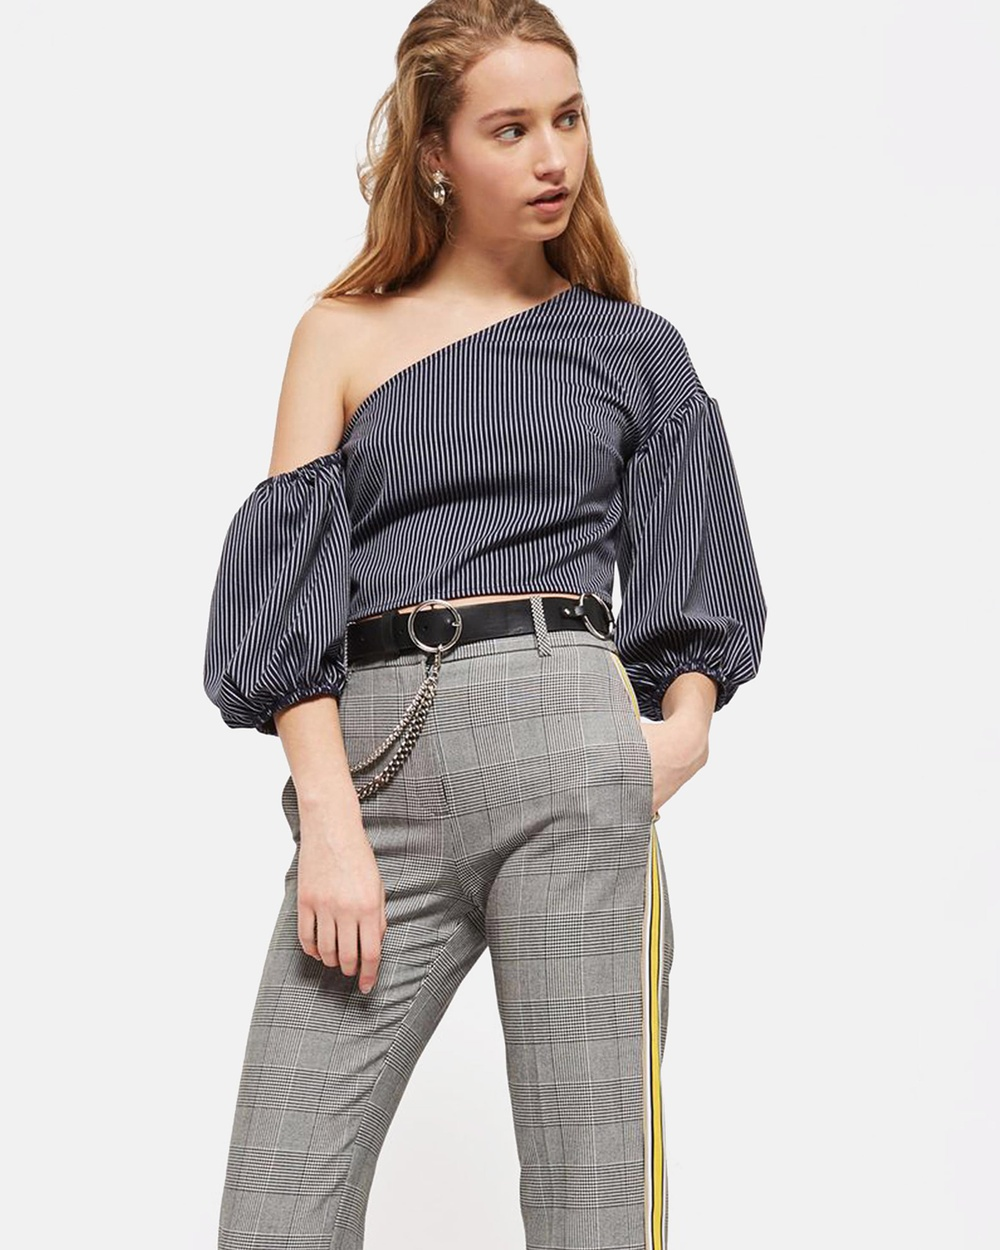 TOPSHOP Striped One Shoulder Top Cropped tops Navy Blue Striped One Shoulder Top